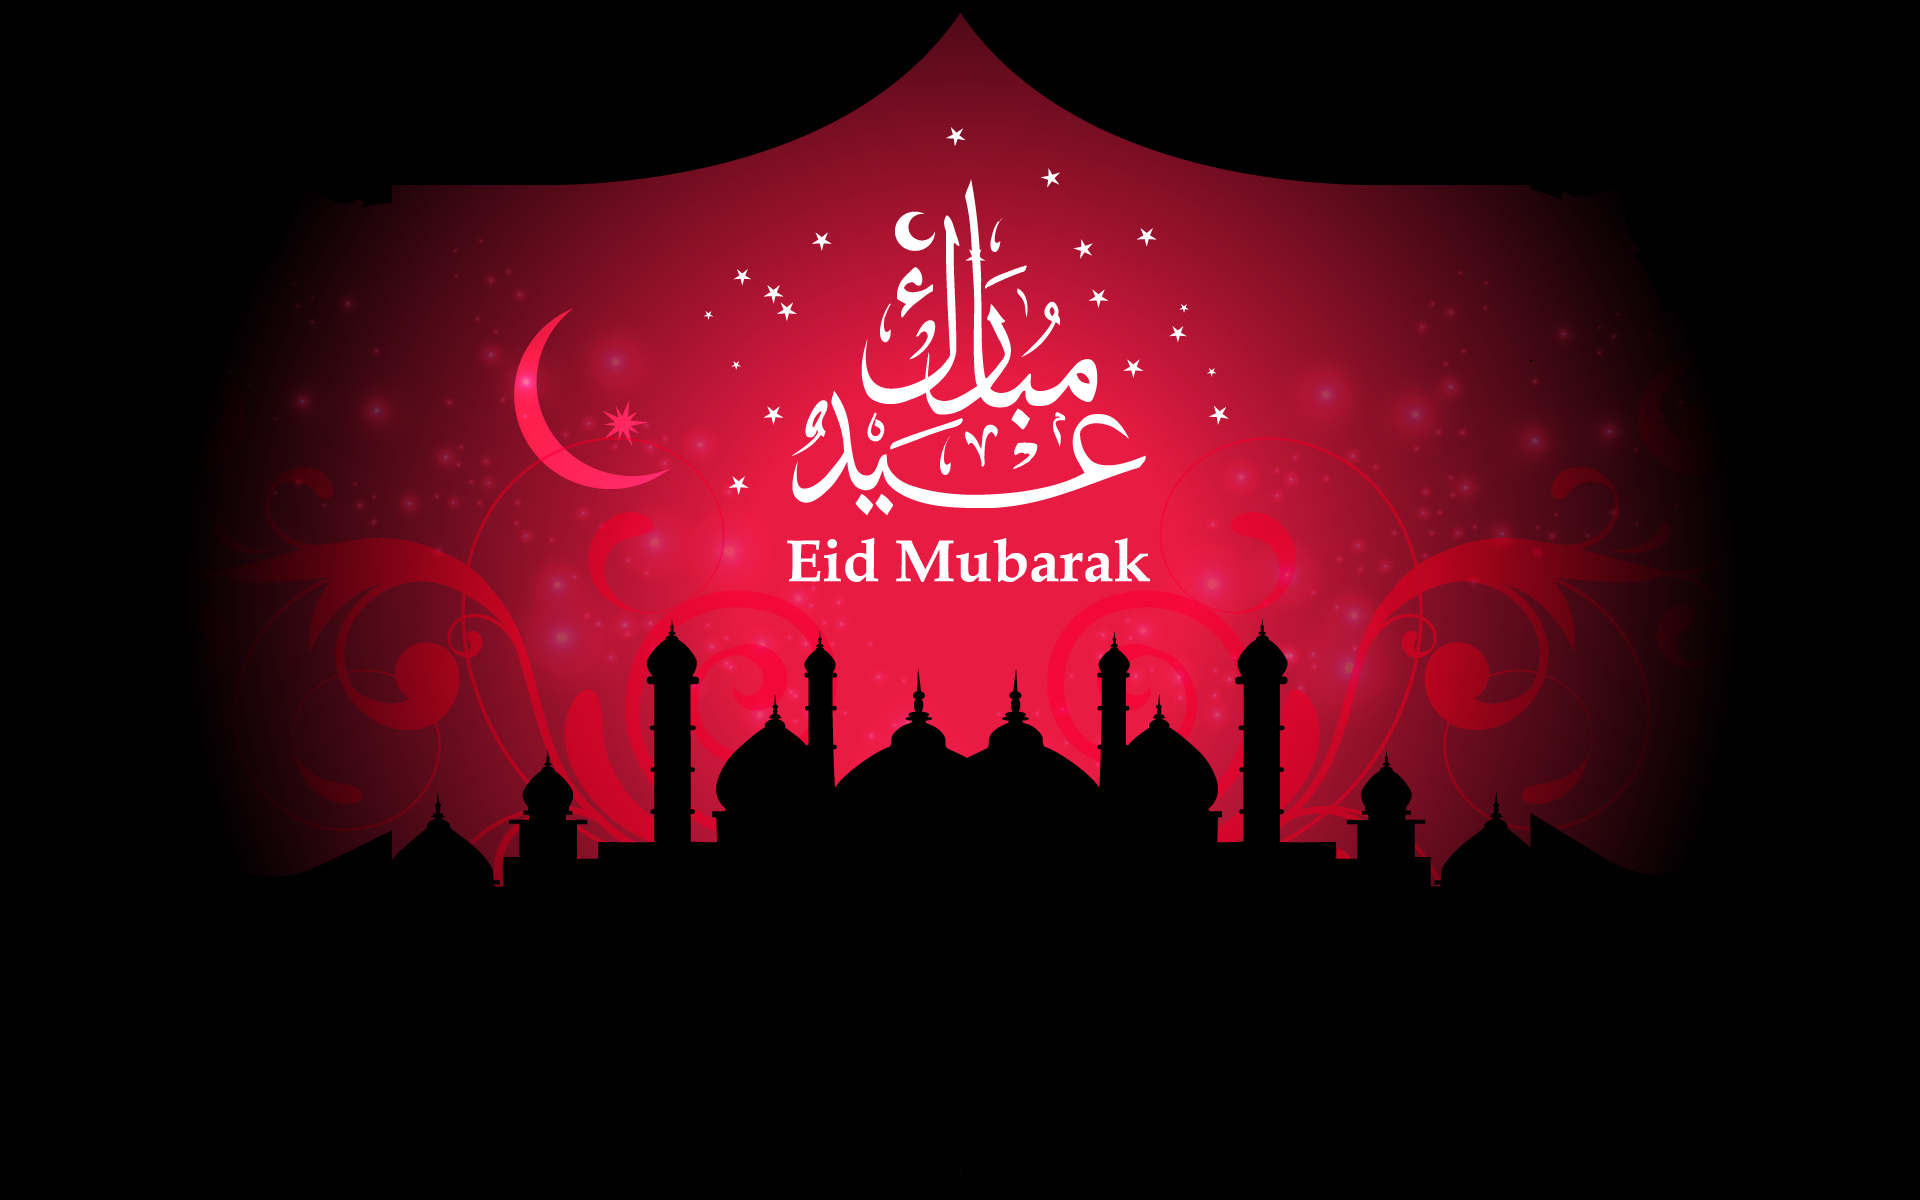 Eid Ramadan Mubarak 2018 HD Wallpapers Images Cover [Eid Ul Fitr]